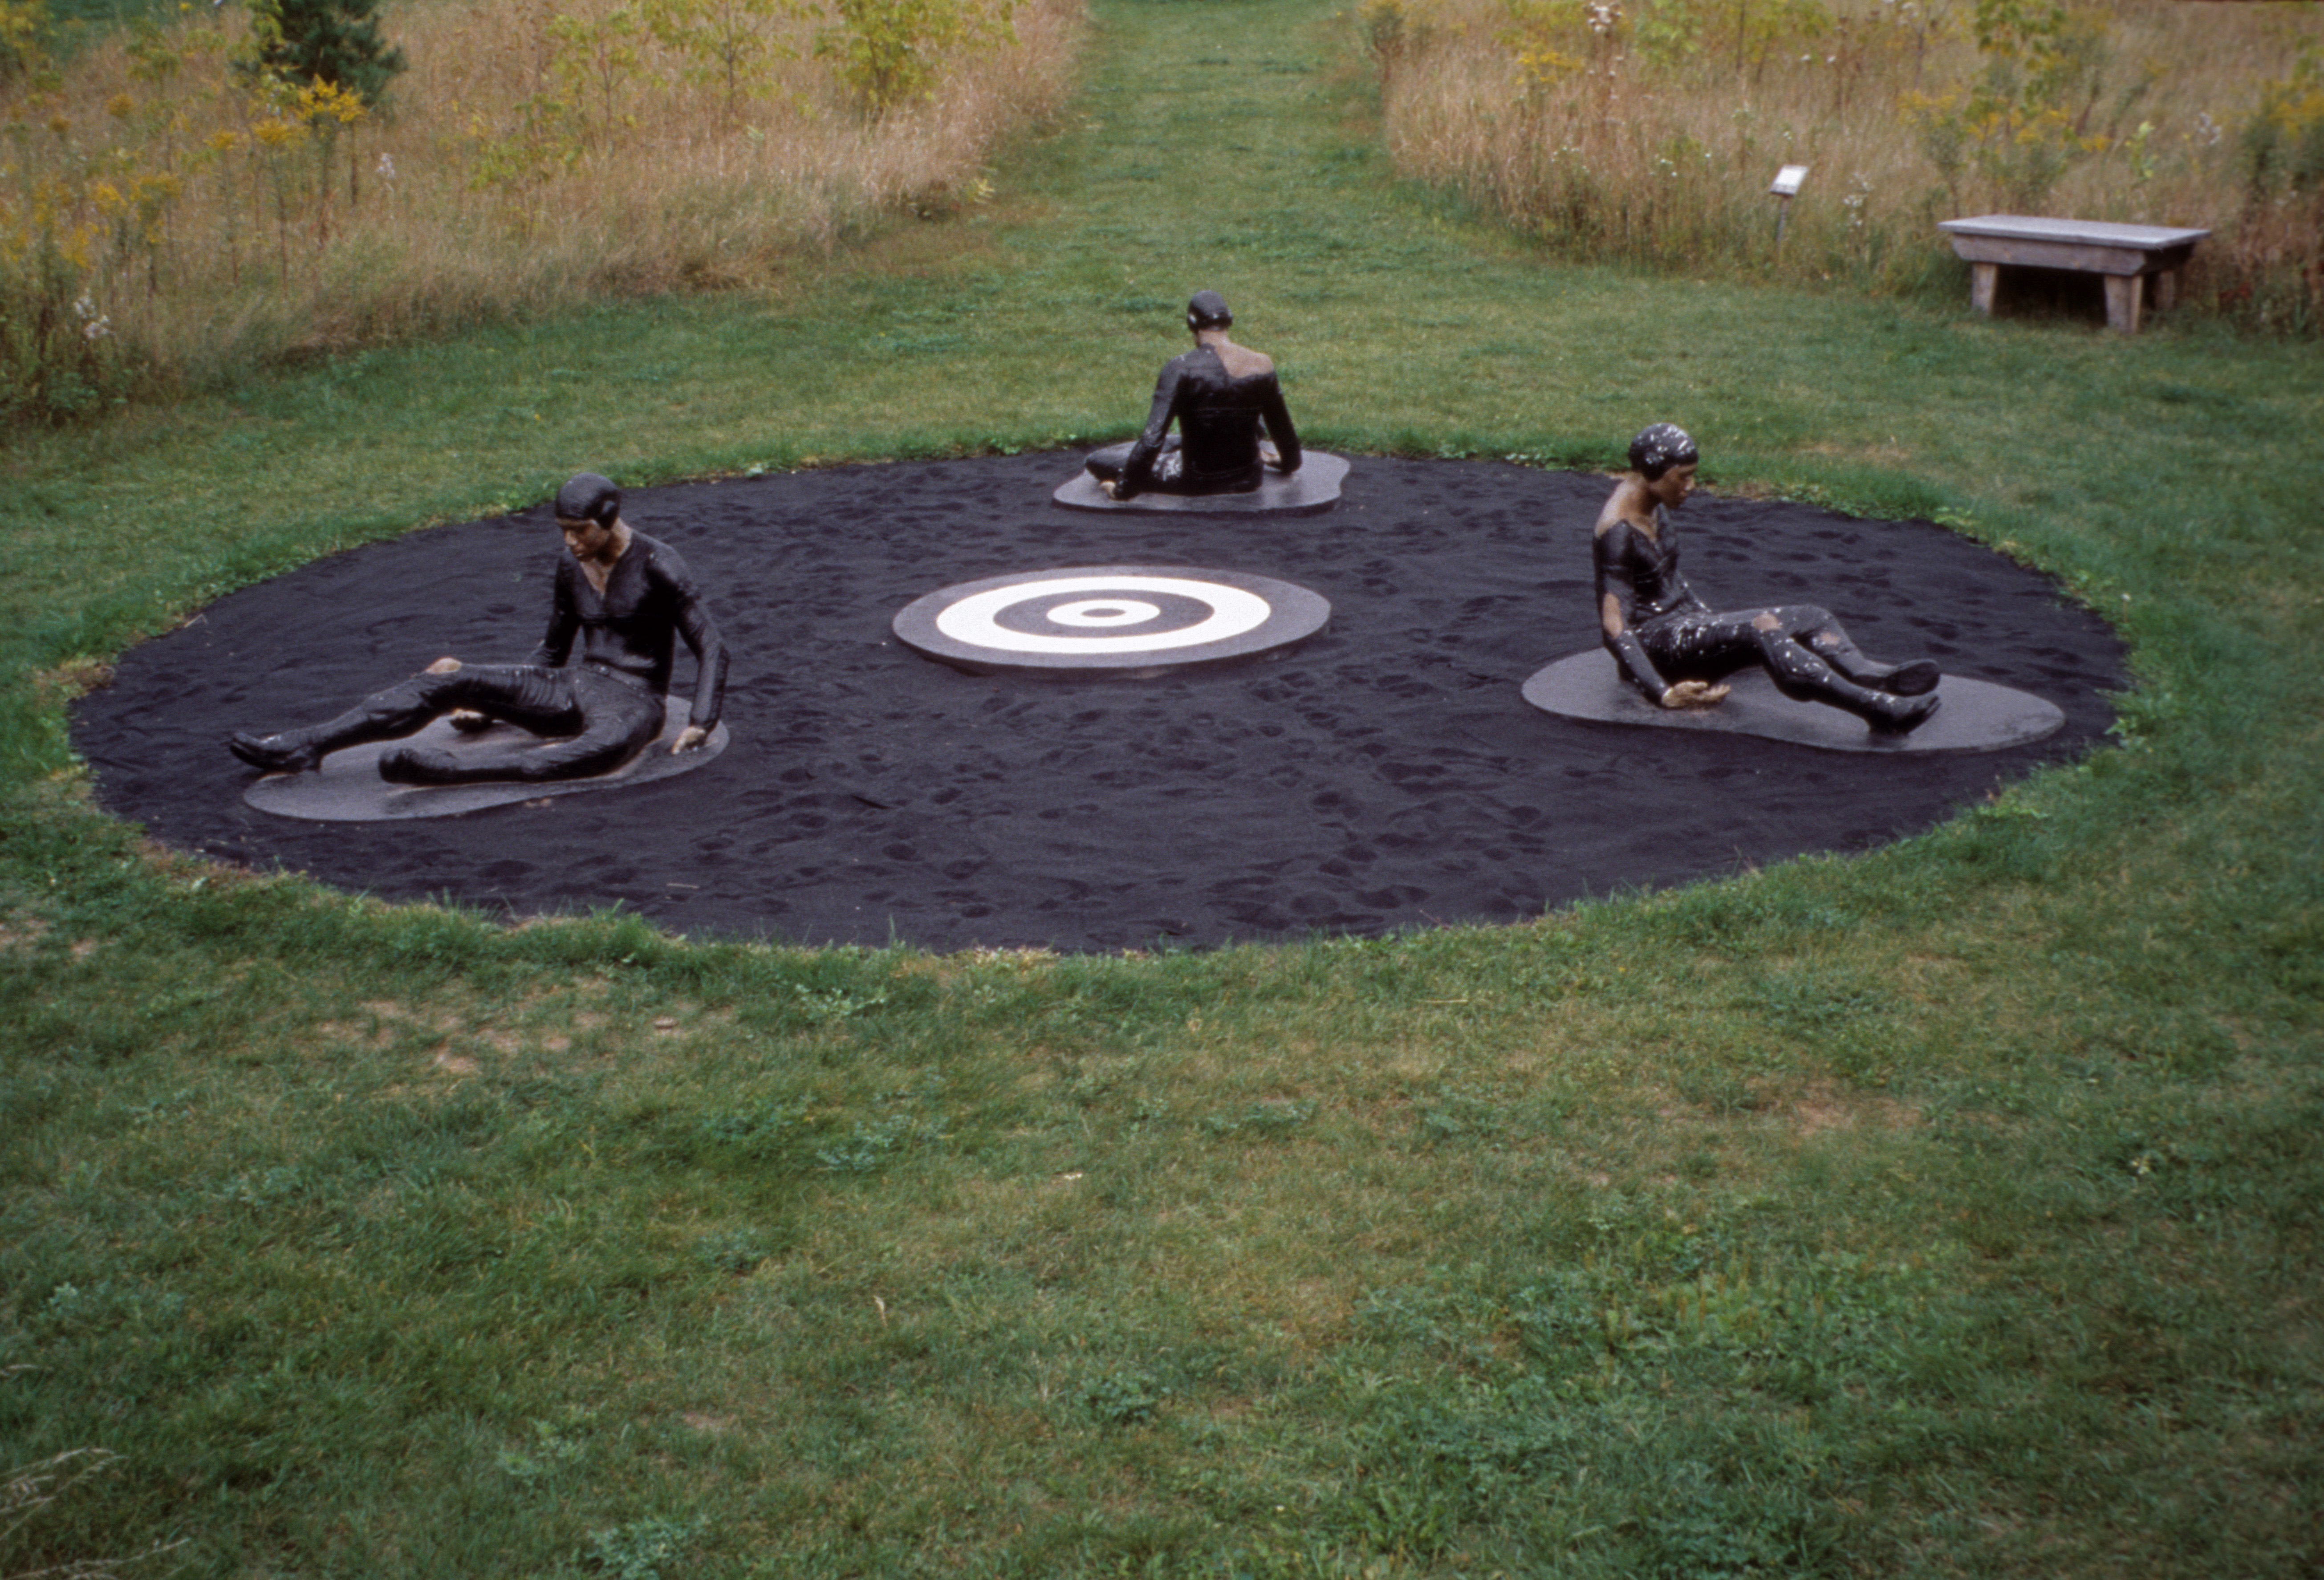 Michael Richards, Are You Down?, 2000. Installed at Franconia Sculpture Park Courtesy of the Michael Richards Estate